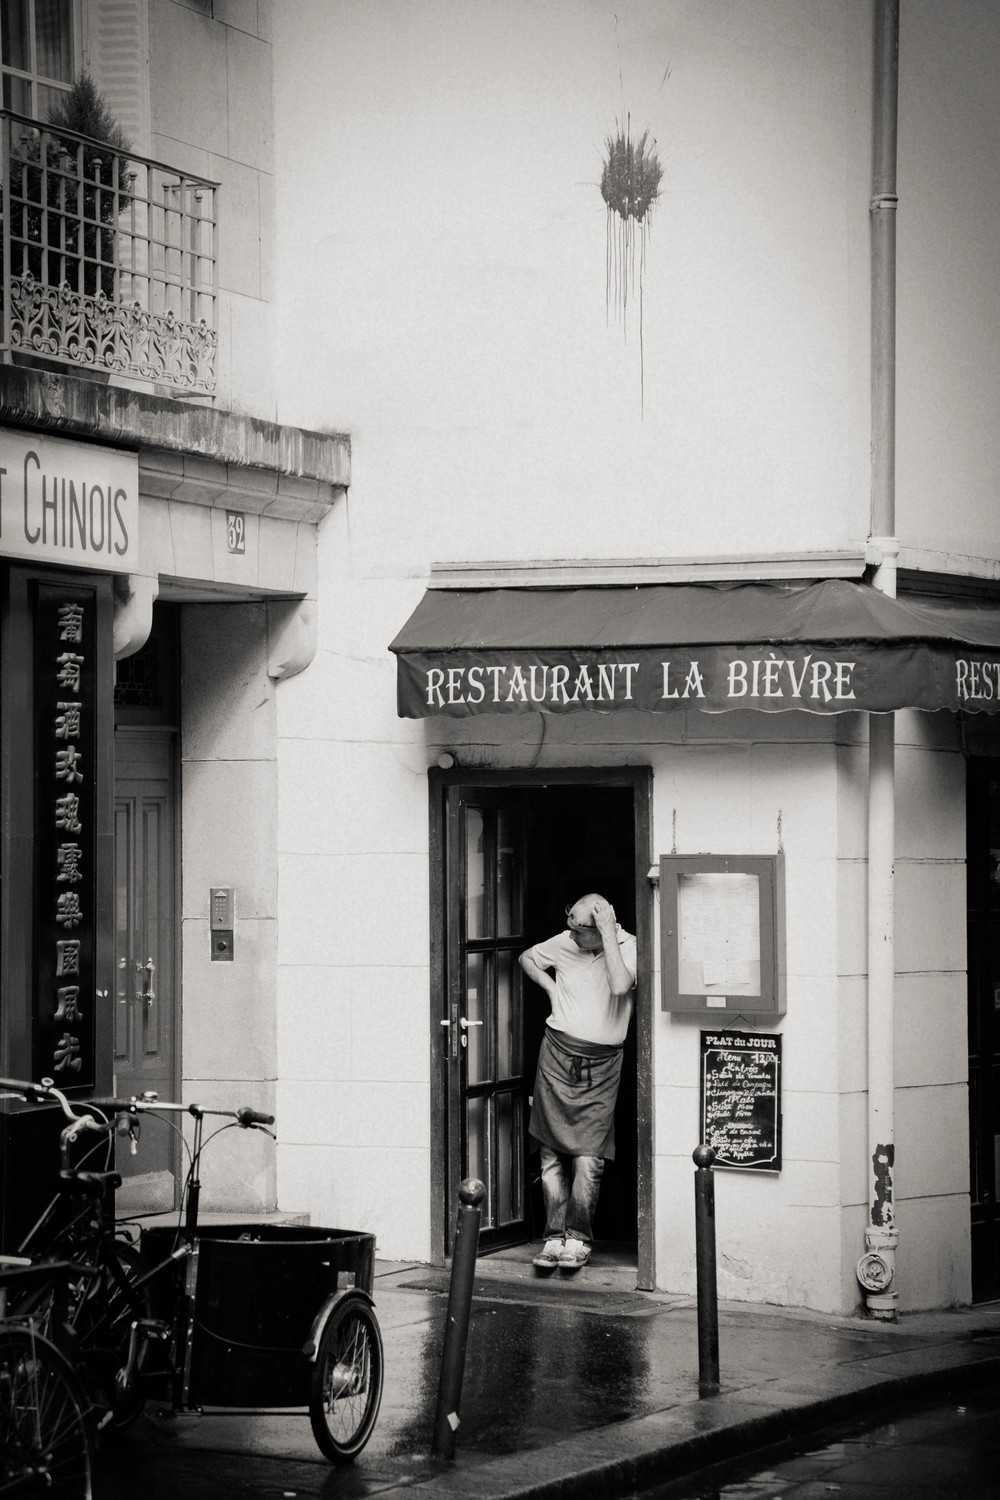 restaurant worker, Paris 2014.